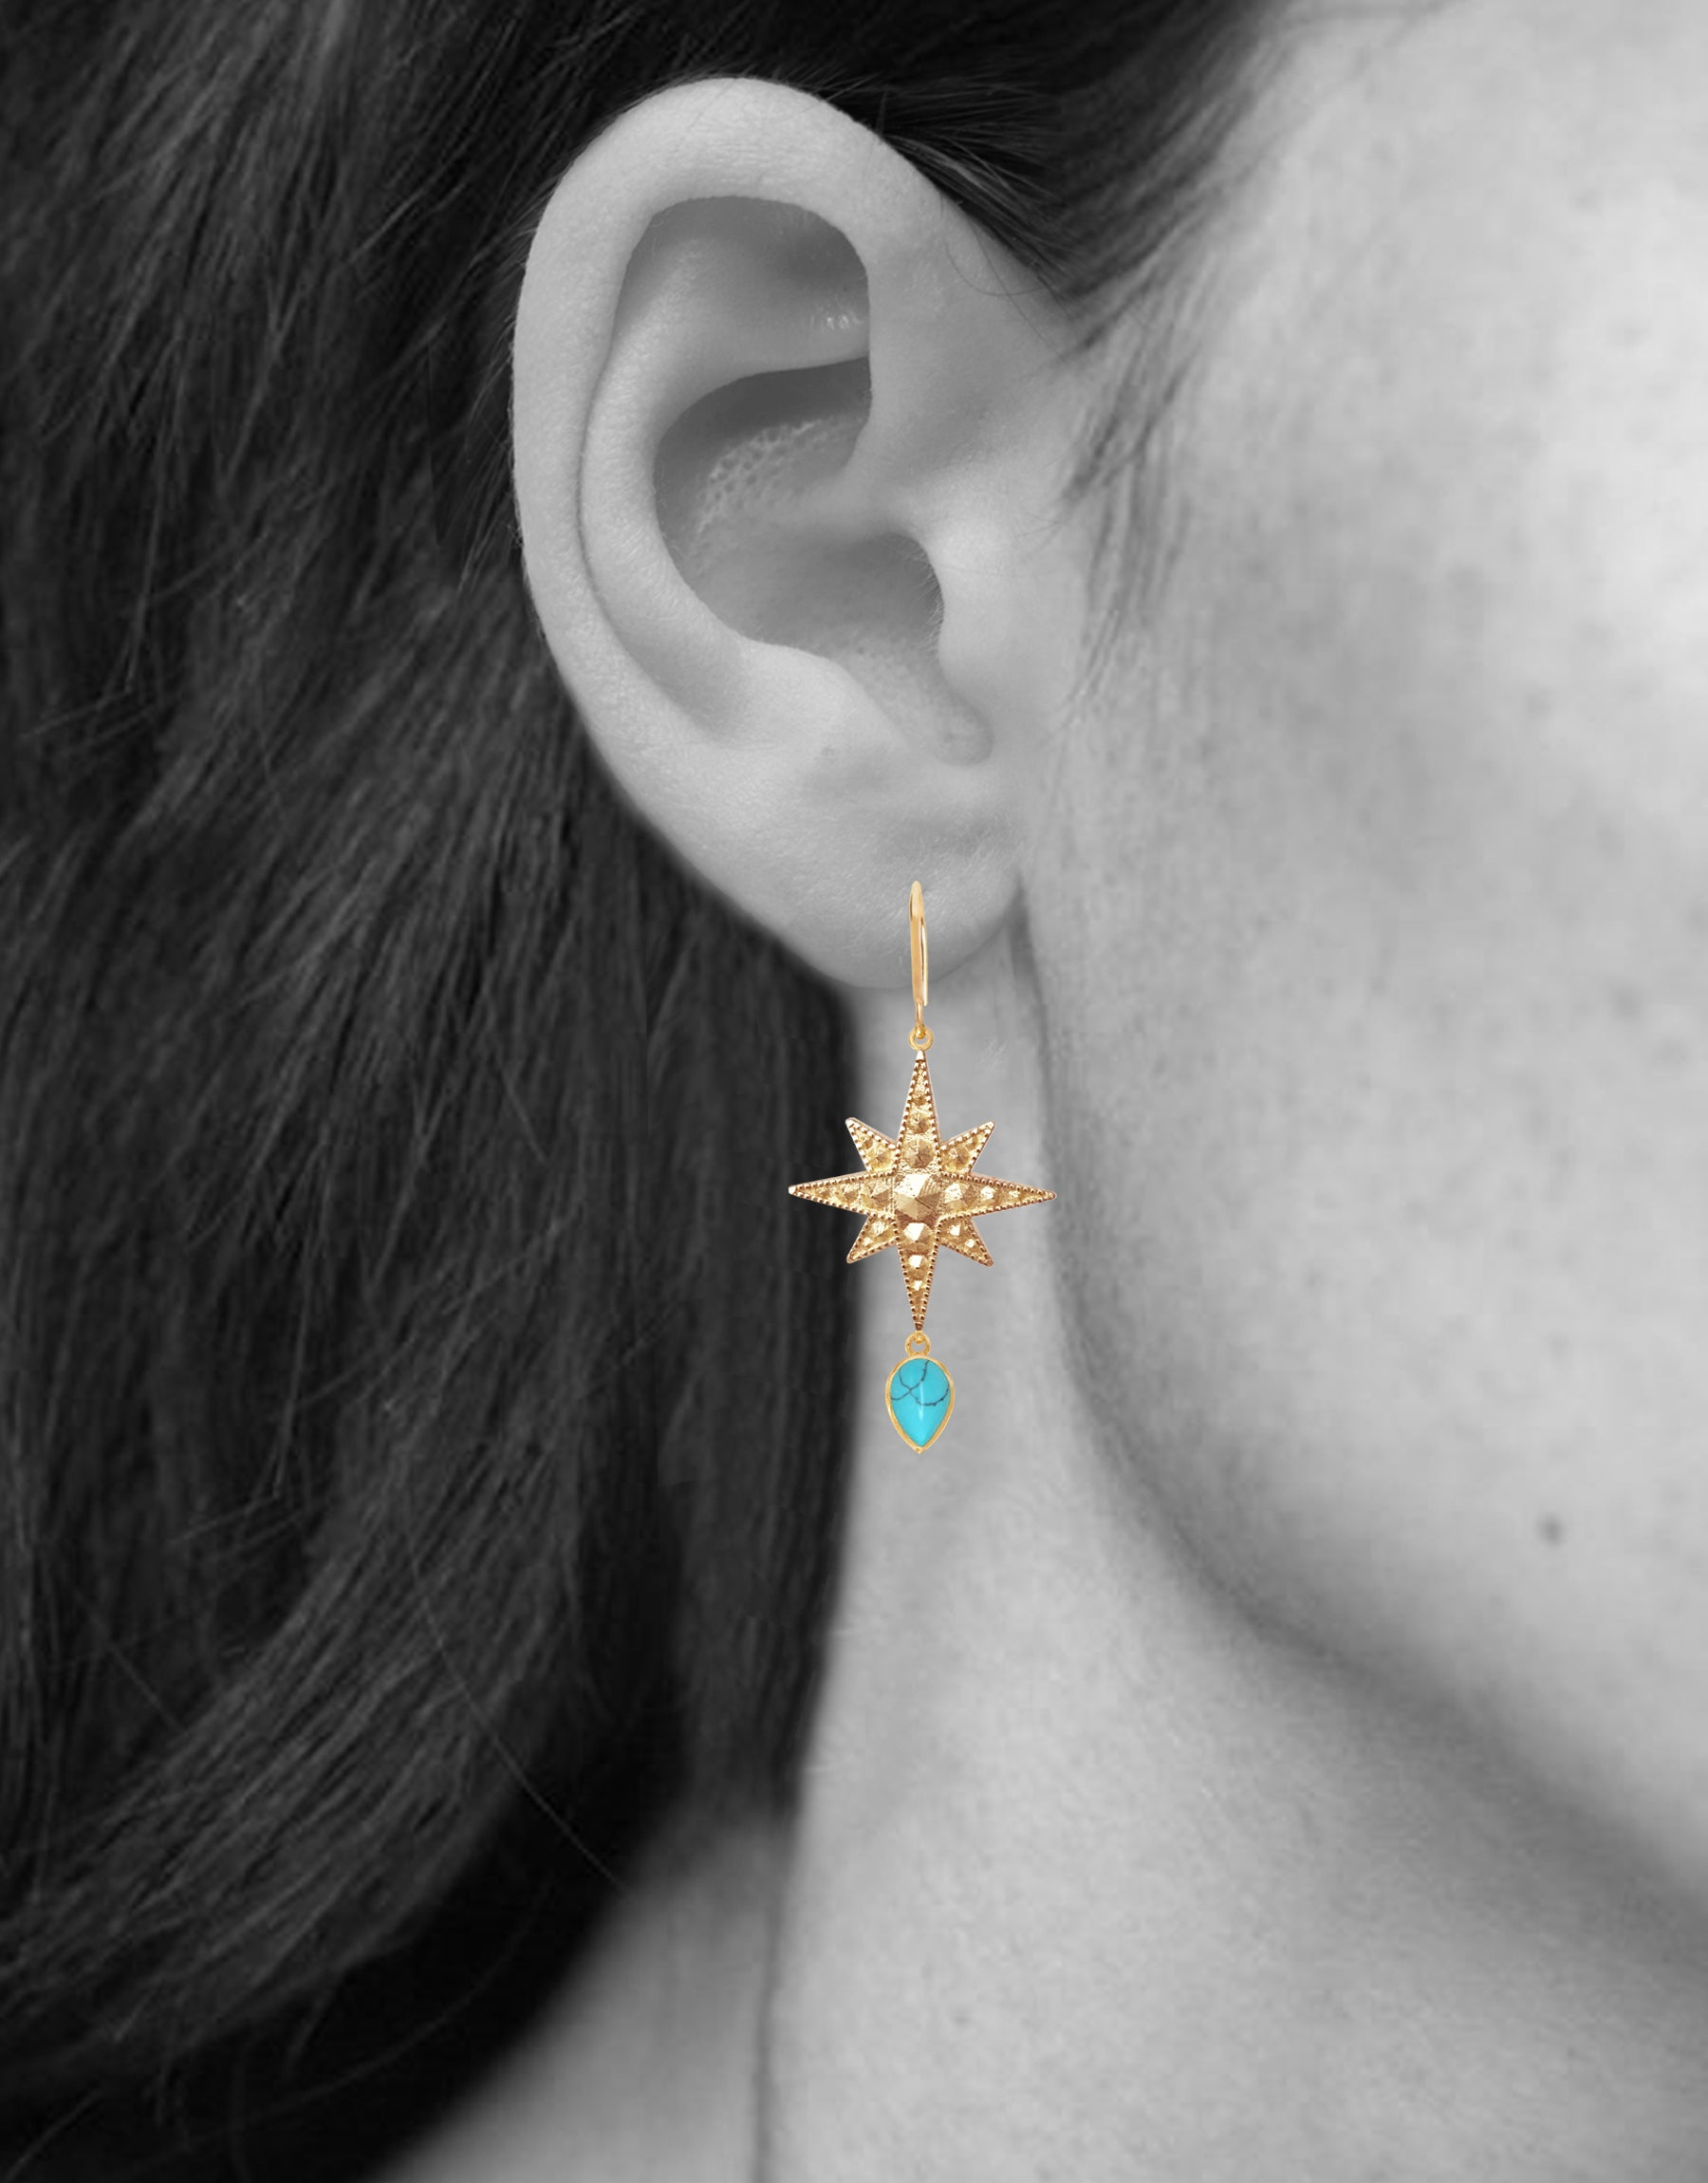 Sirius Earrings<br /><i><small>18K Gold Plated with Turquoise</small></i><br /> - Eddera